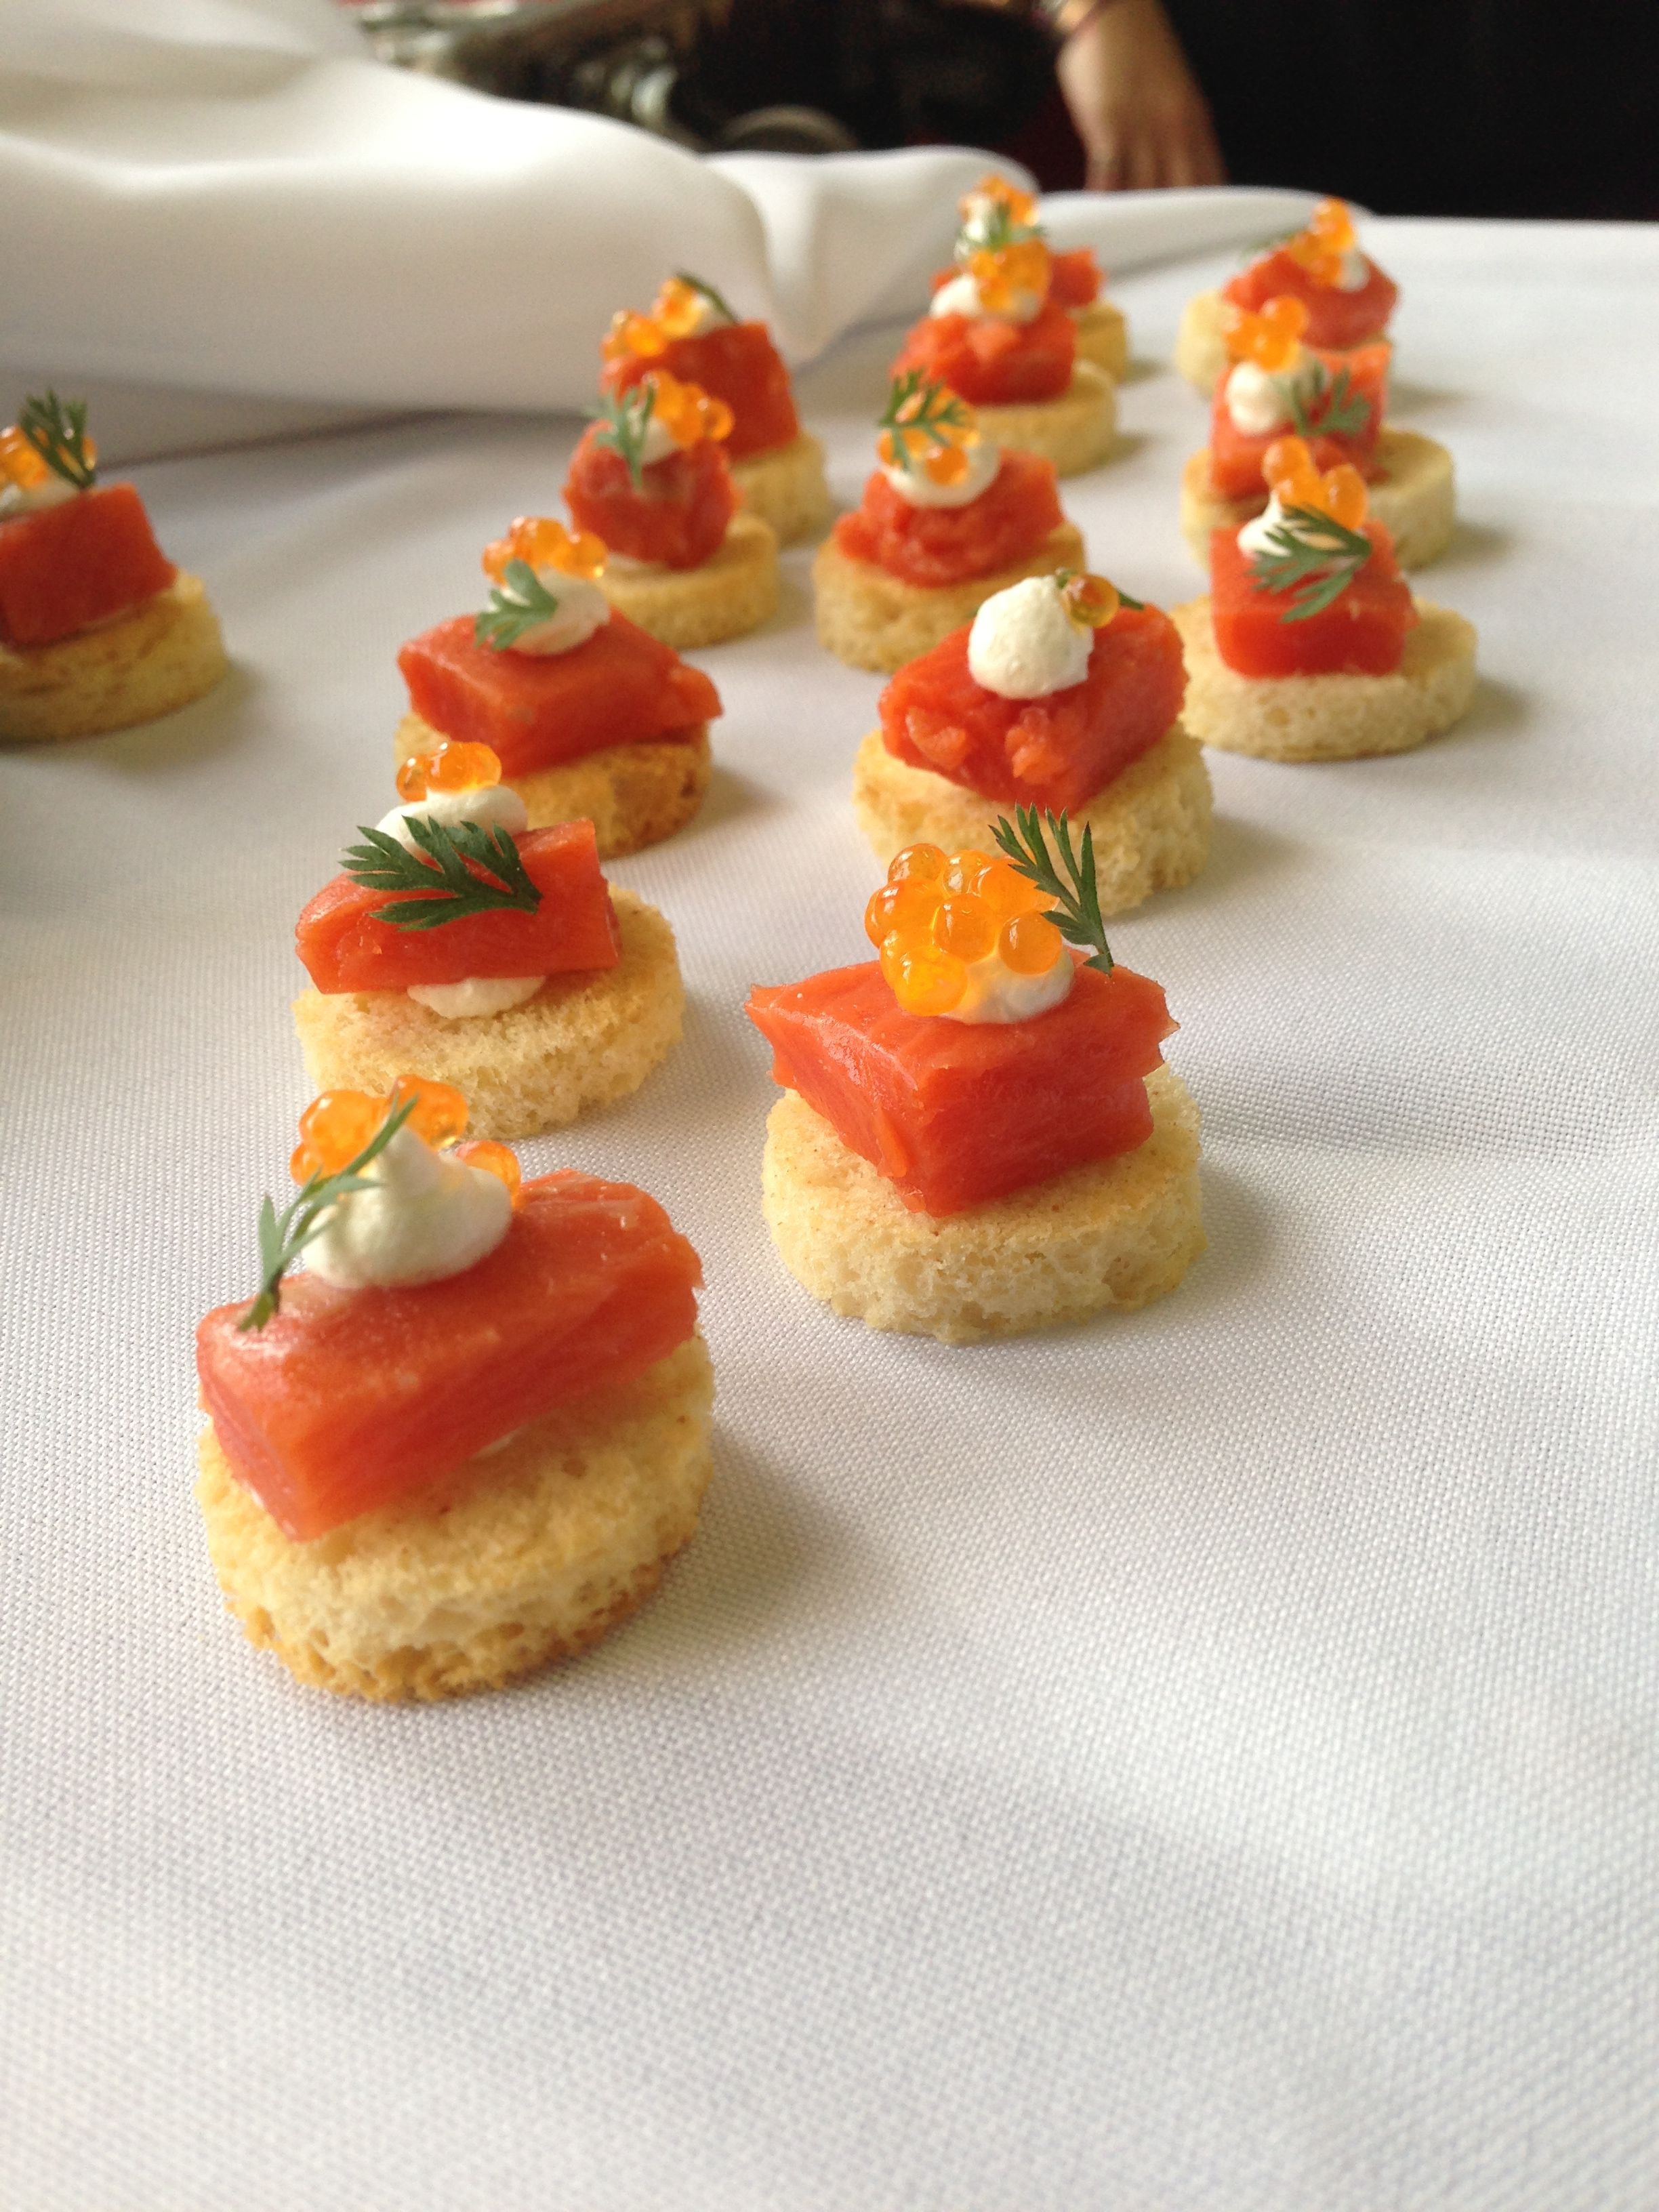 Smoked Salmon & Caviar, a perfect pairing, are scaled down to #Canape size, great for a large group